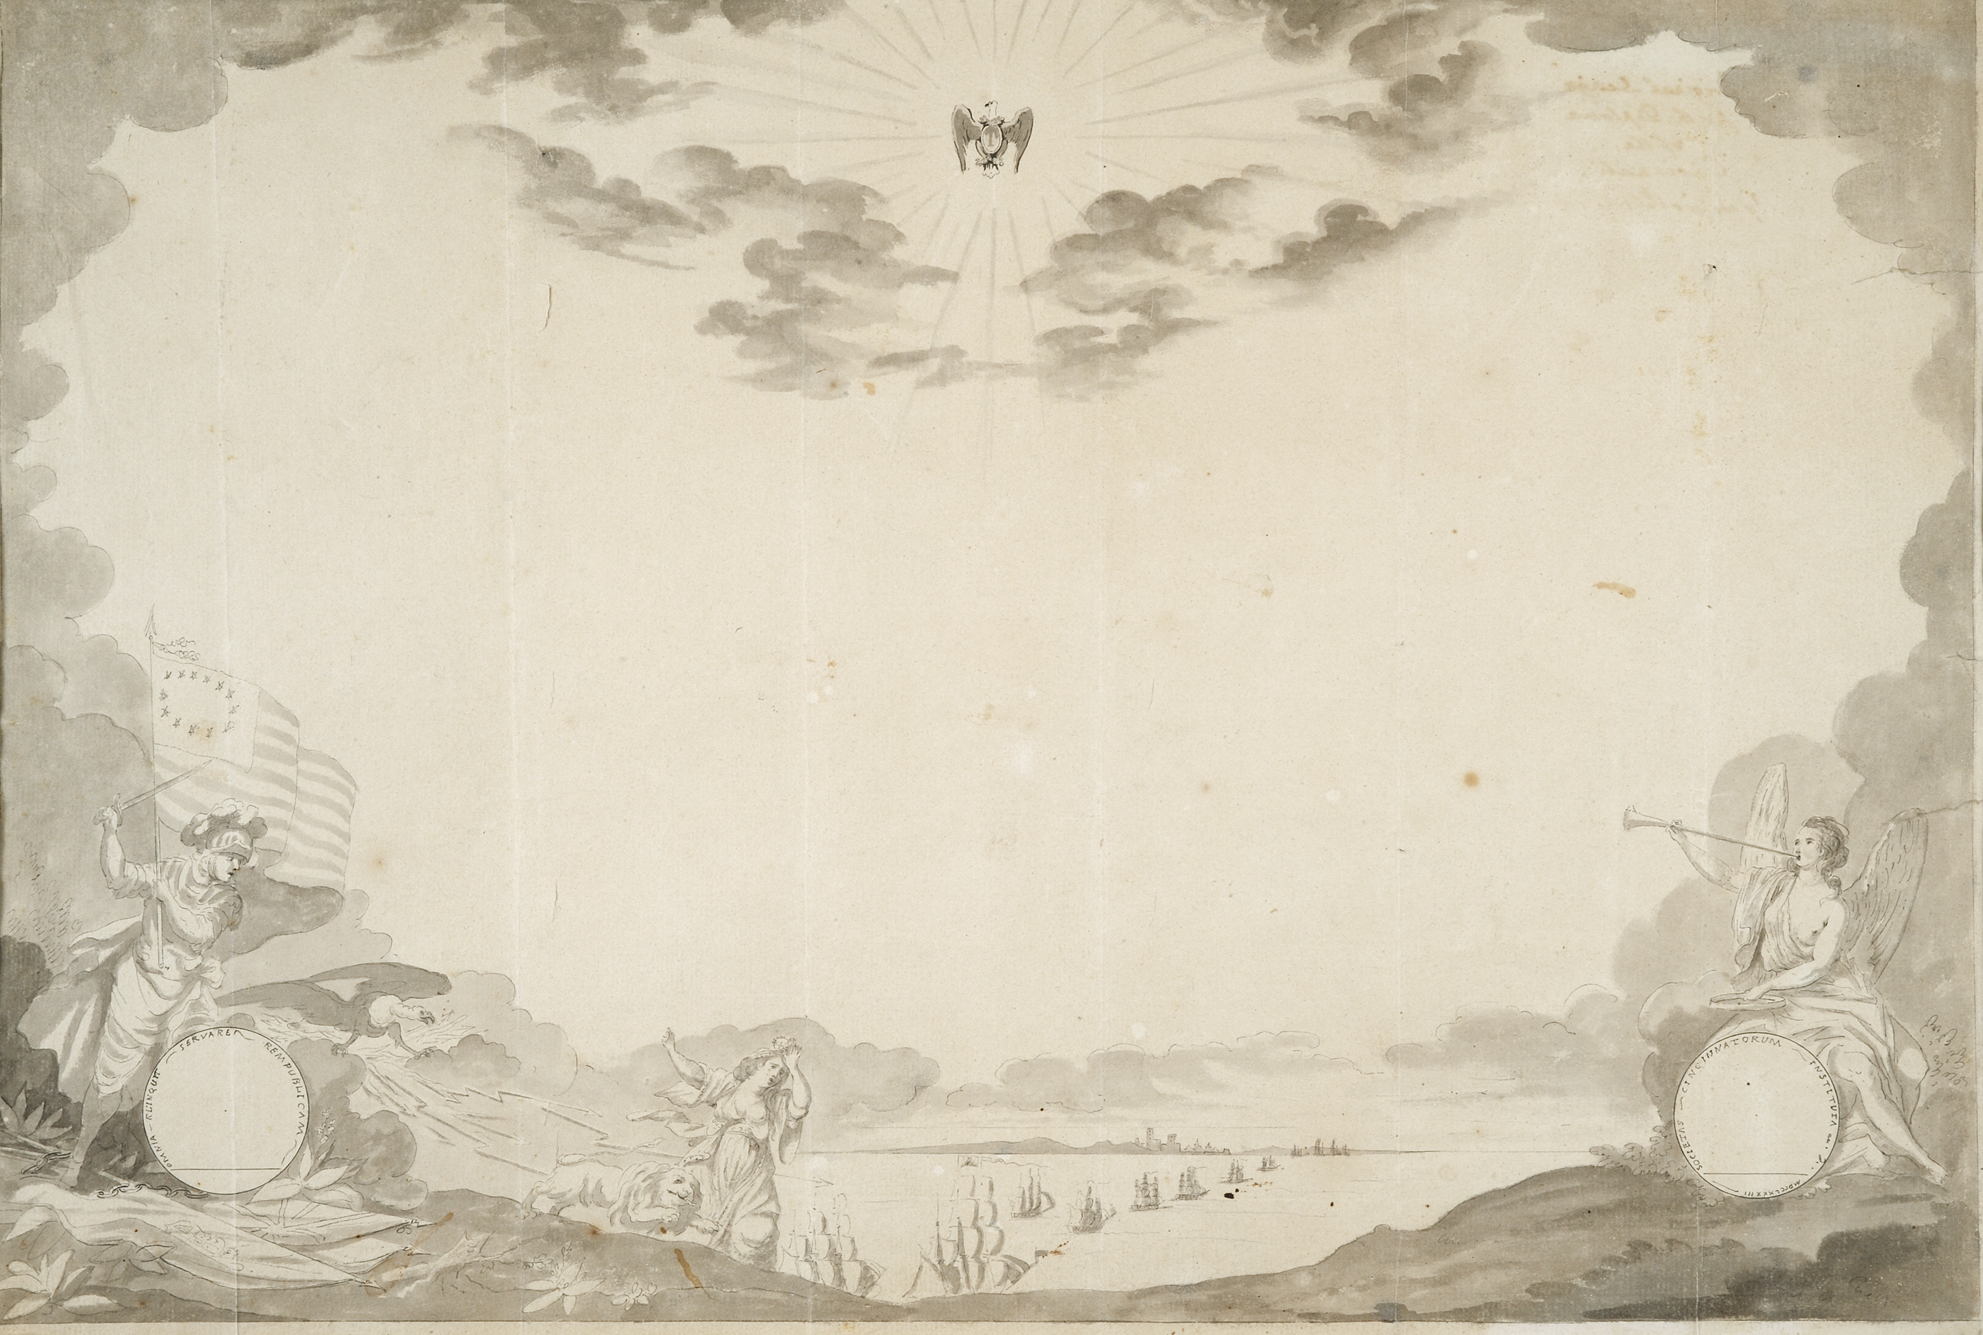 Sketch for the diploma of the Society of the Cincinnati, Pierre-Charles L'Enfant, June 1783